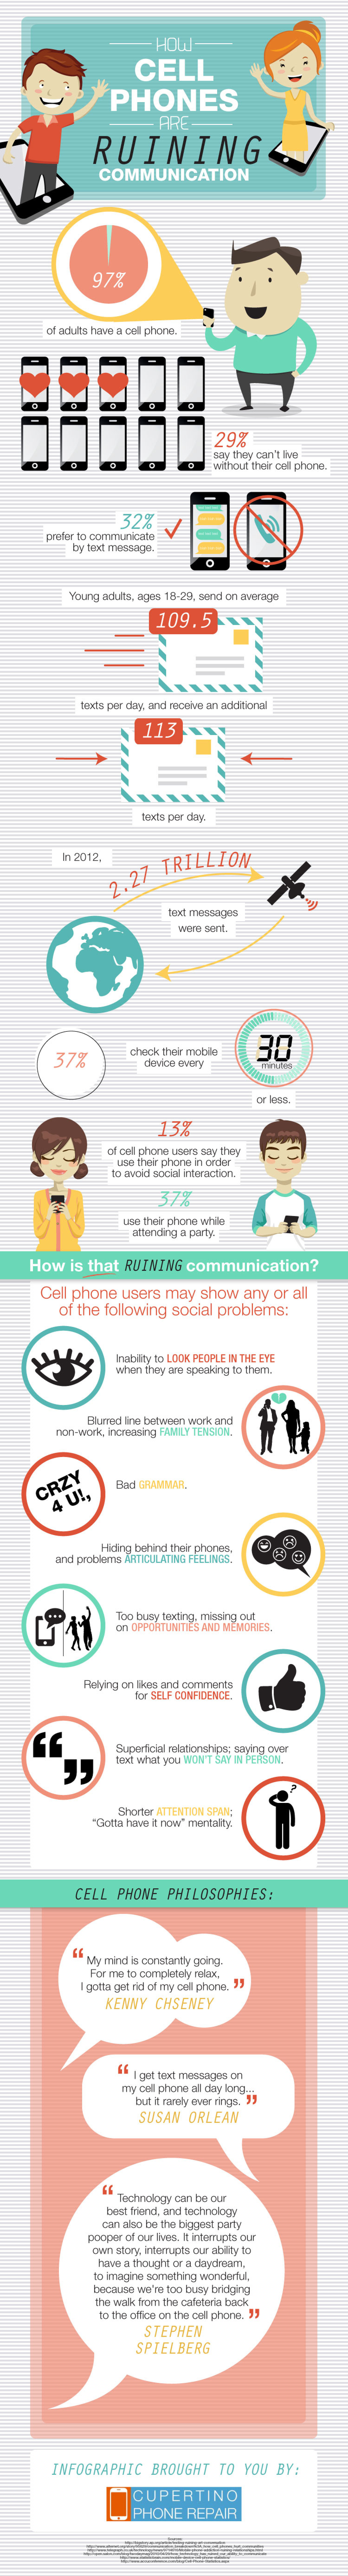 How Cell Phones are Ruining Communication Infographic